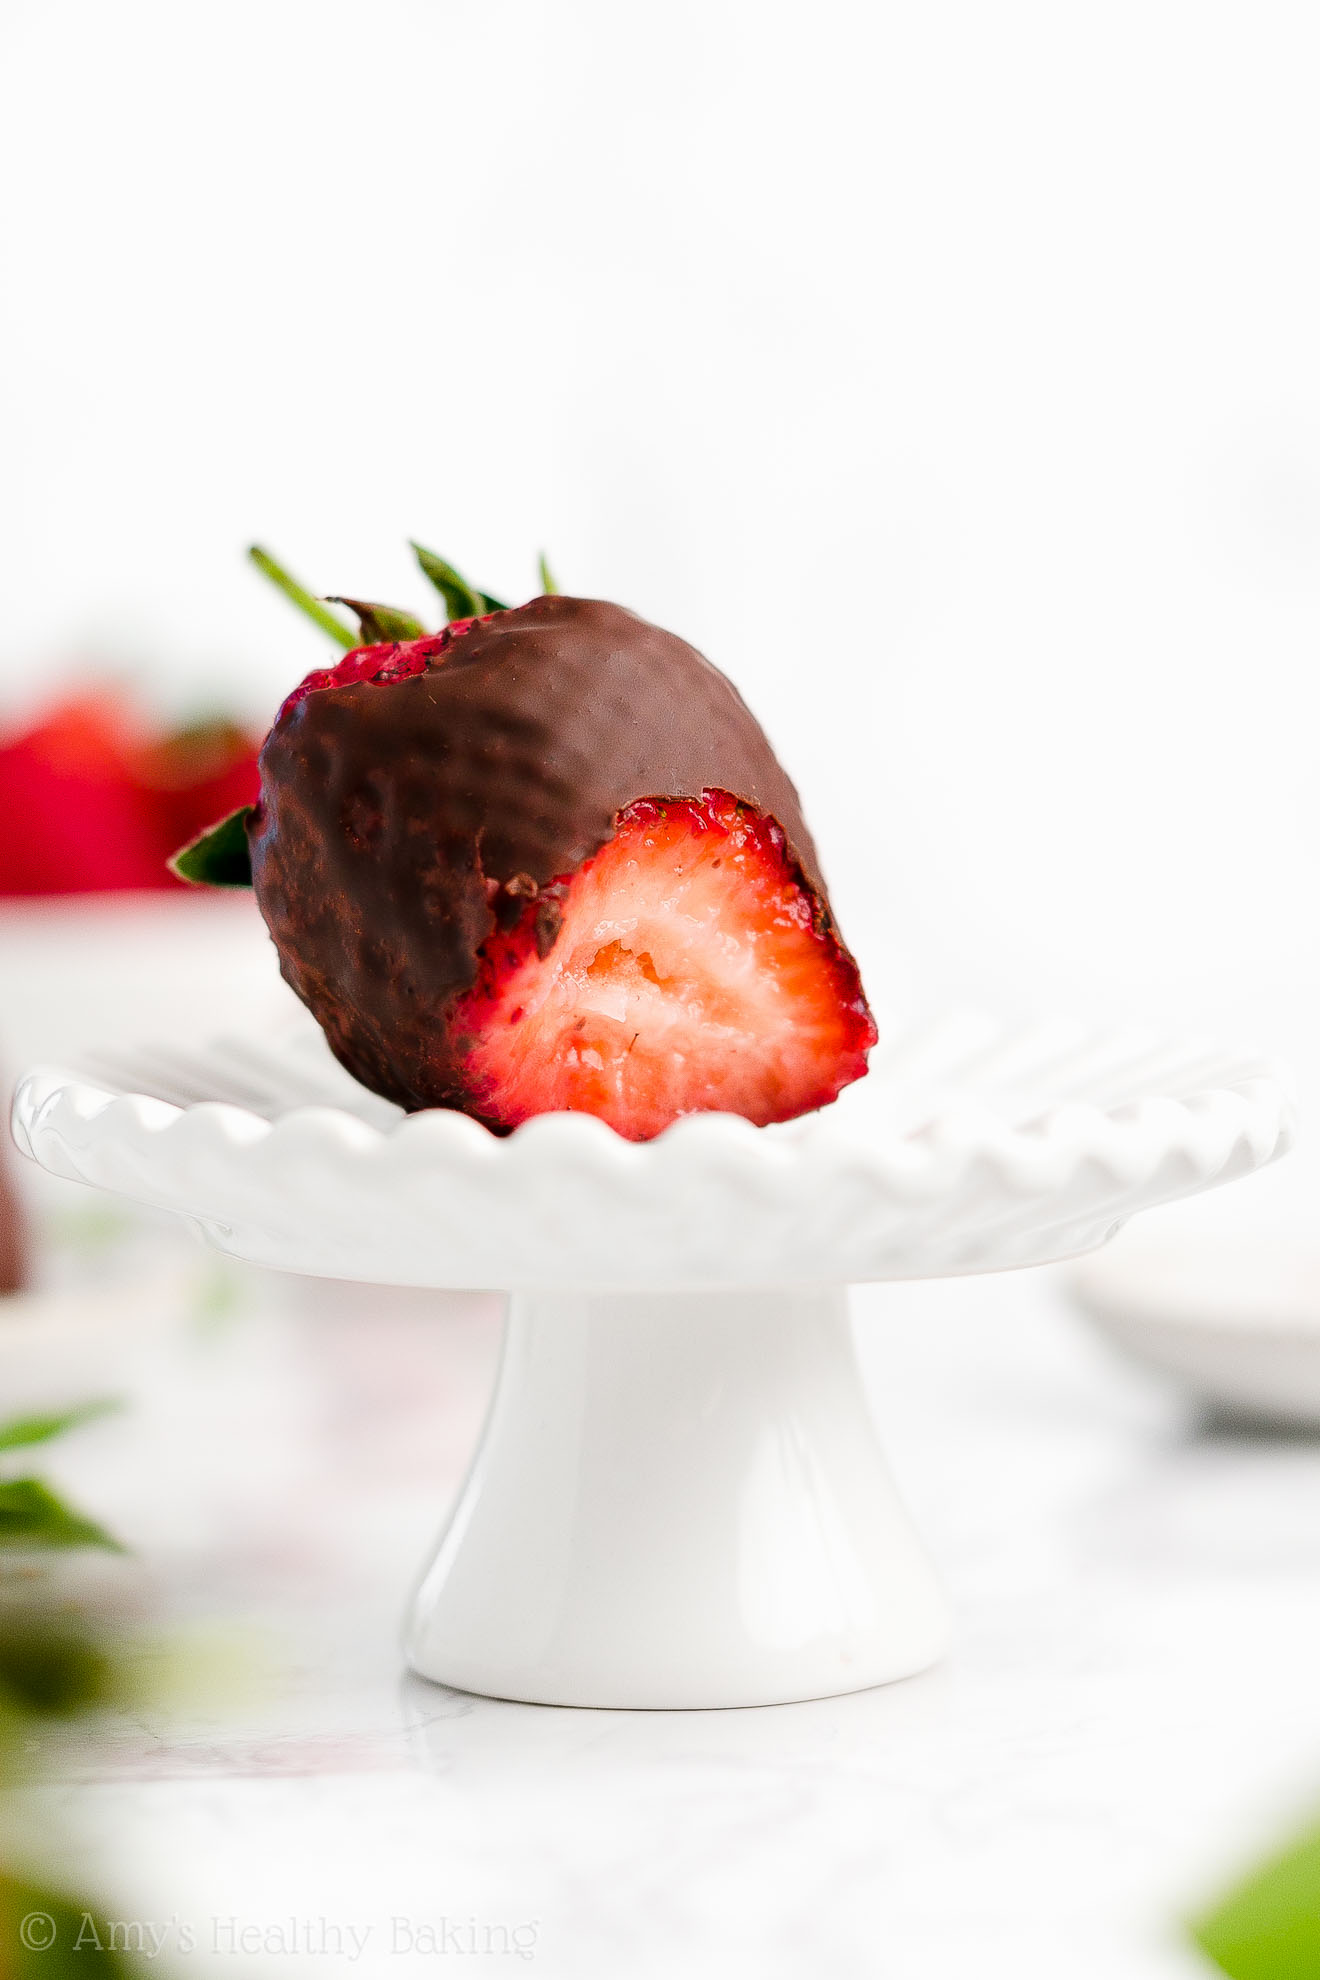 Perfect, BEST EVER Gluten Free Dairy Free Vegan Chocolate Covered Strawberries